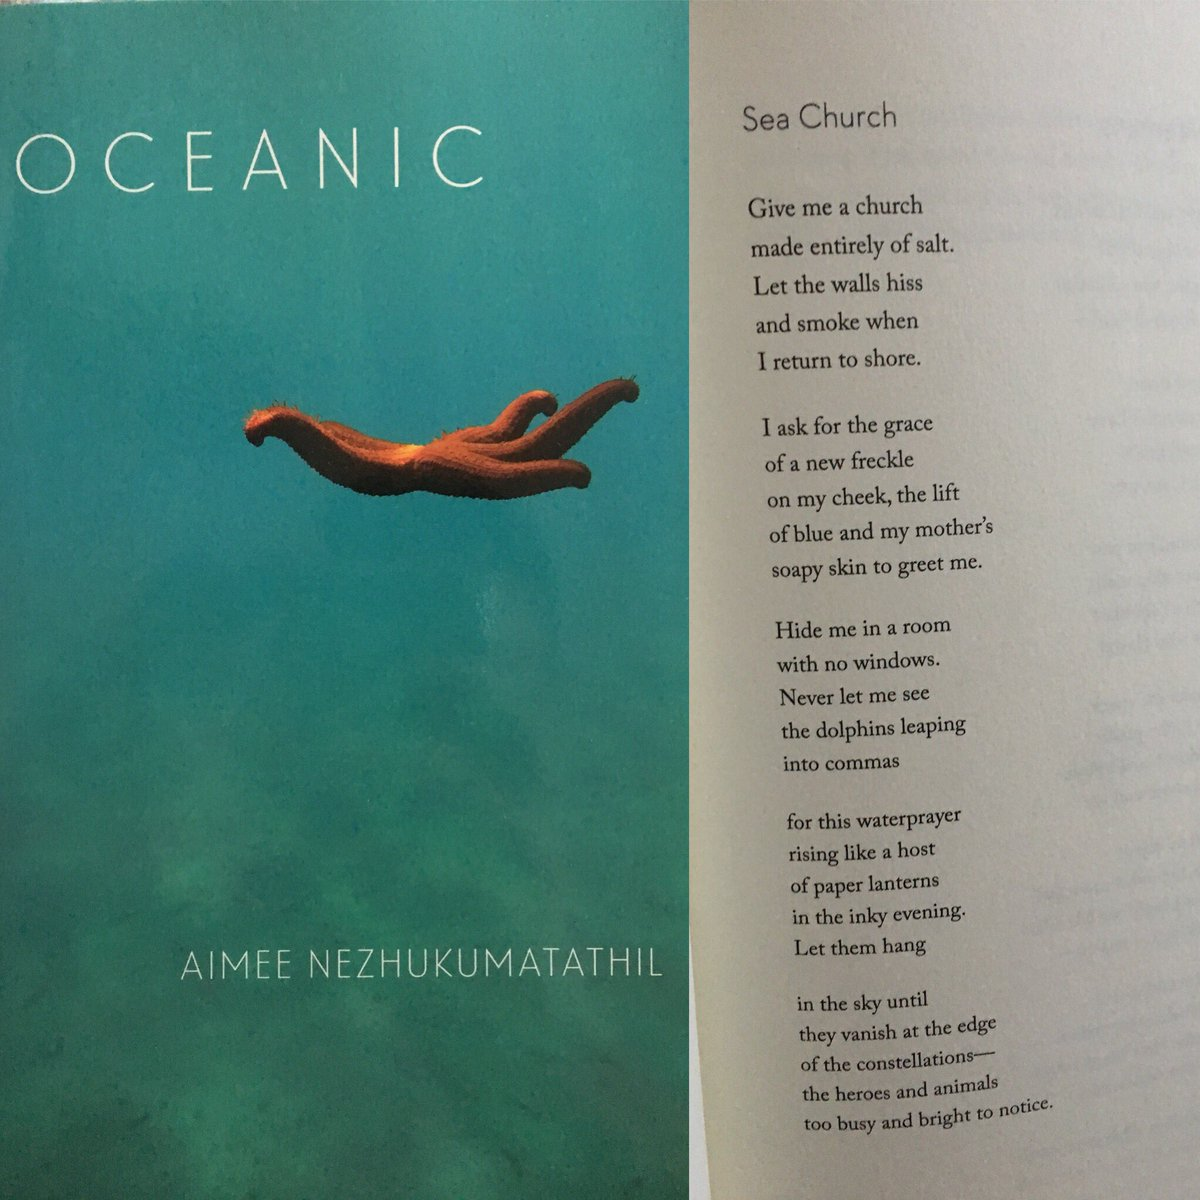 """'Give me a church made entirely of salt.' Aimee Nezhukumatathil, """"Sea Church"""" from Oceanic, 13/31 #TheSealeyChallenge #31Books31Days<br>http://pic.twitter.com/K8kNcTBLsz"""